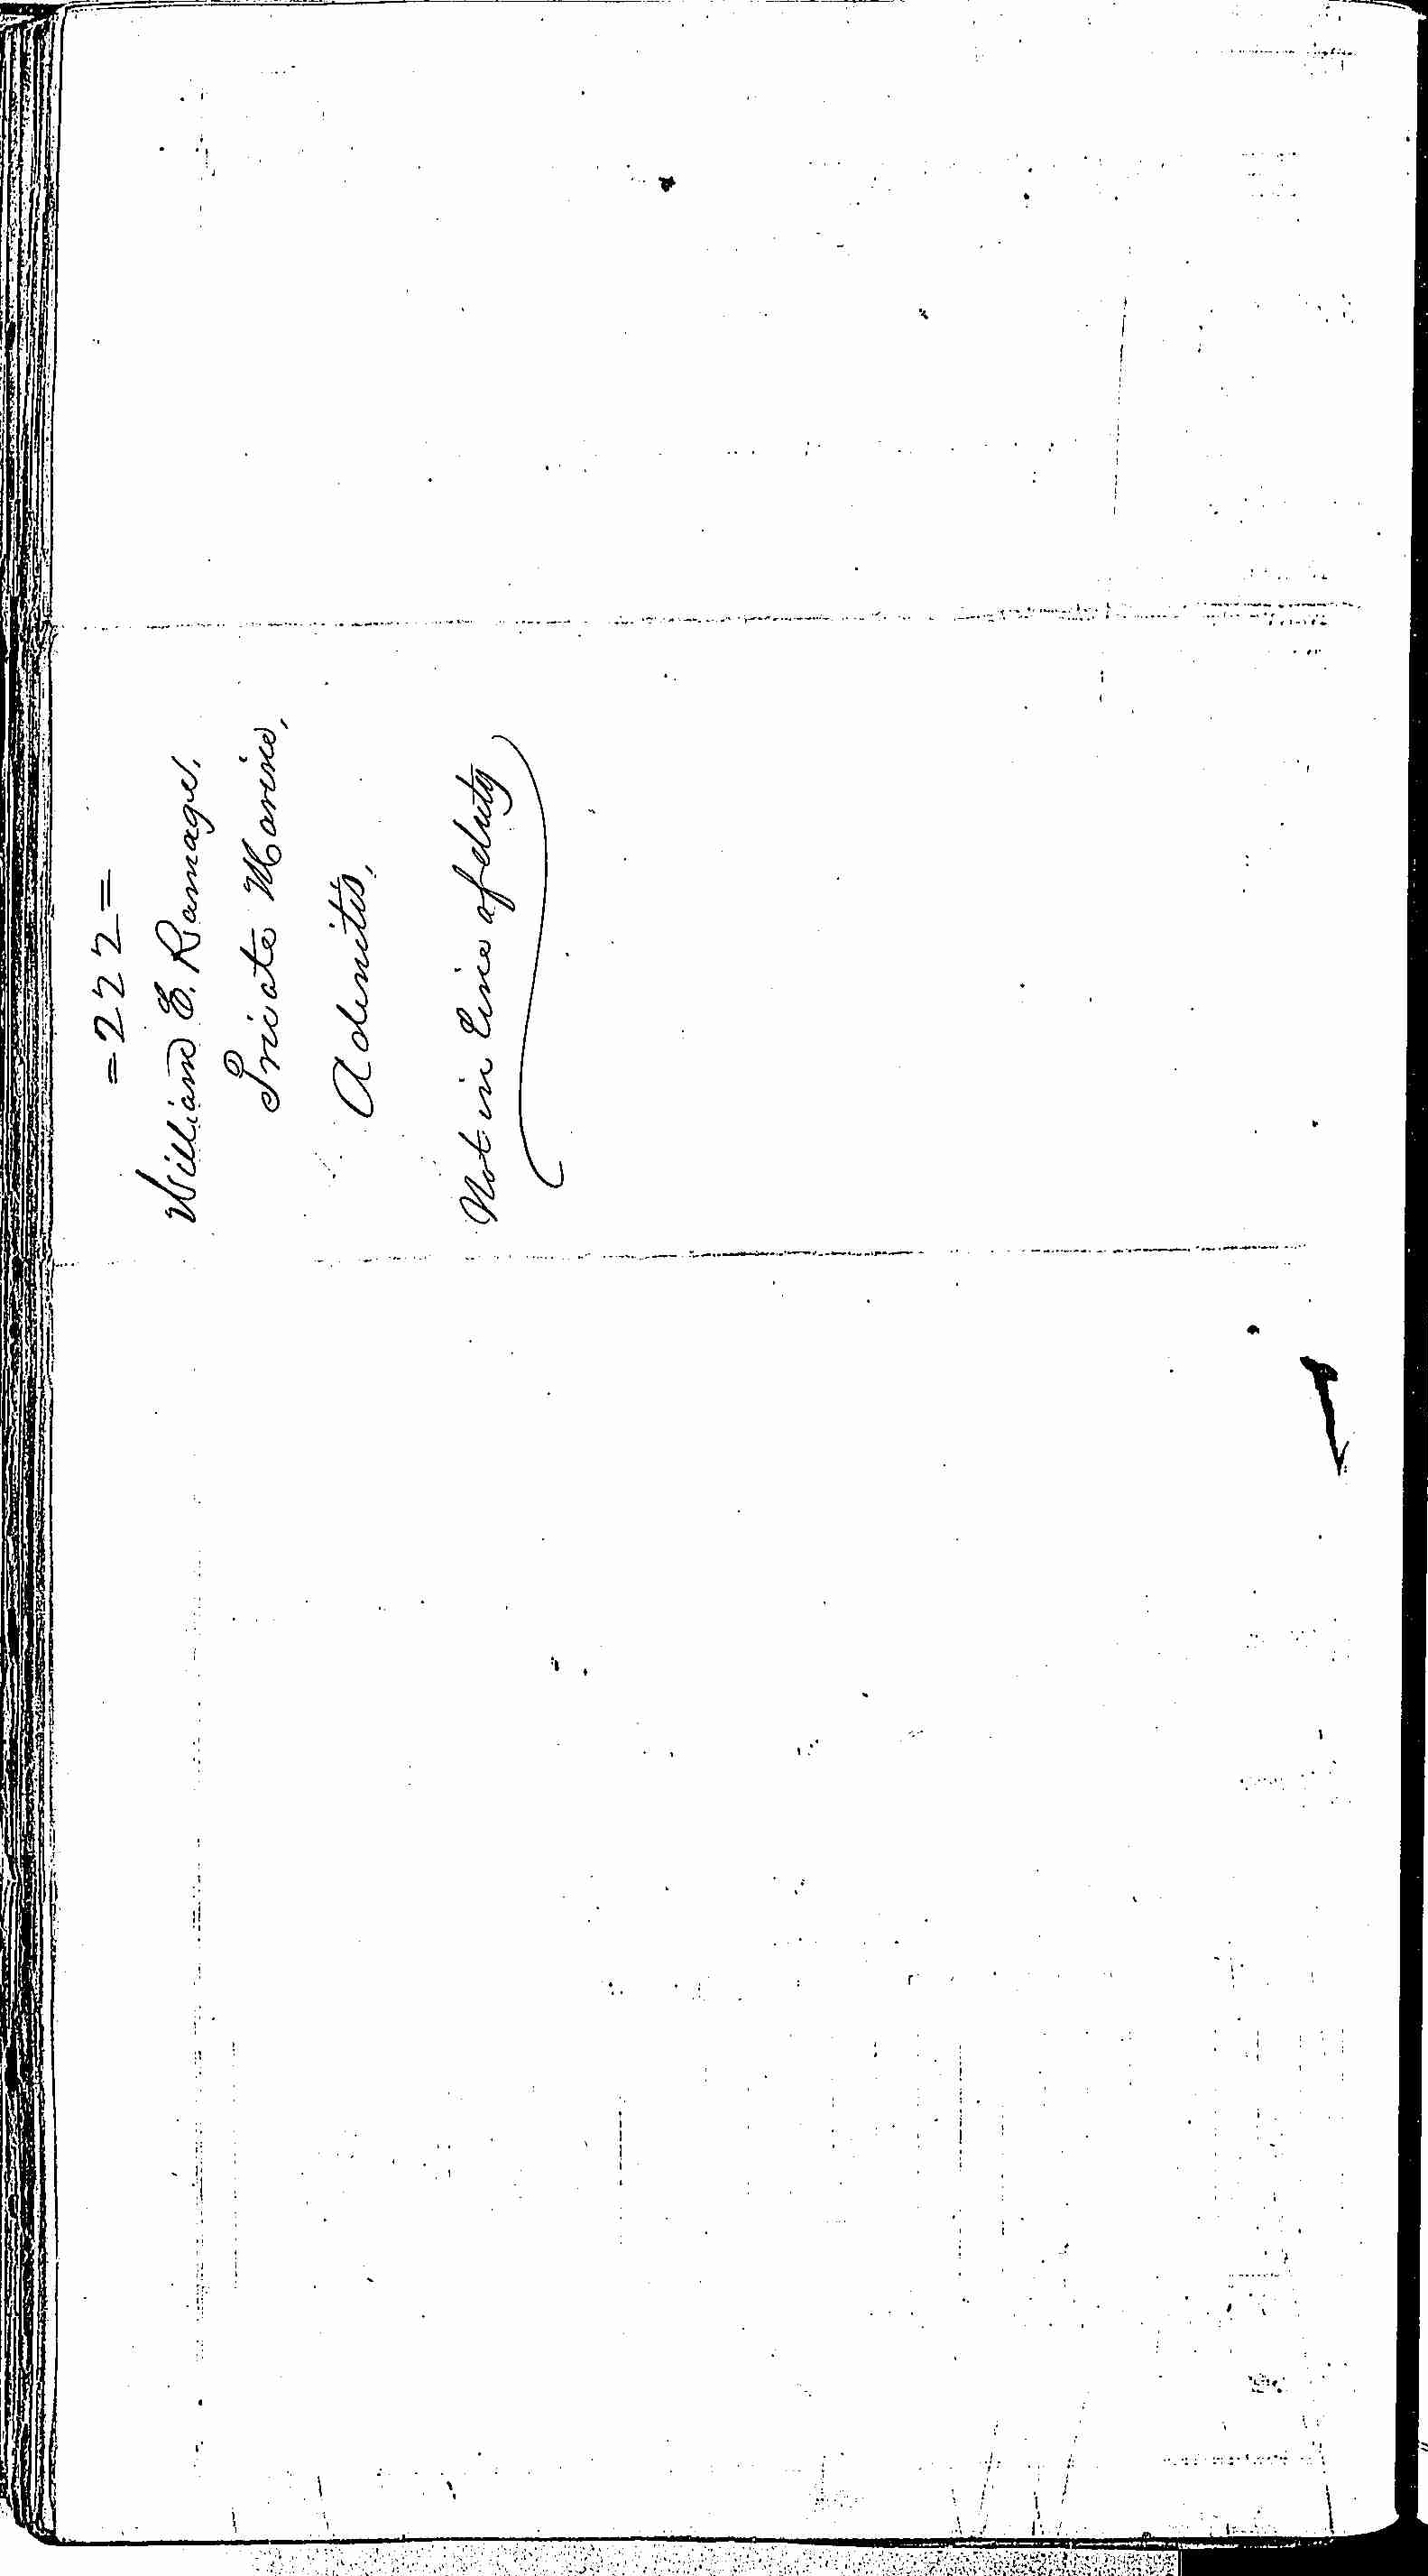 Entry for William E. Ramage (page 2 of 2) in the log Hospital Tickets and Case Papers - Naval Hospital - Washington, D.C. - 1866-68